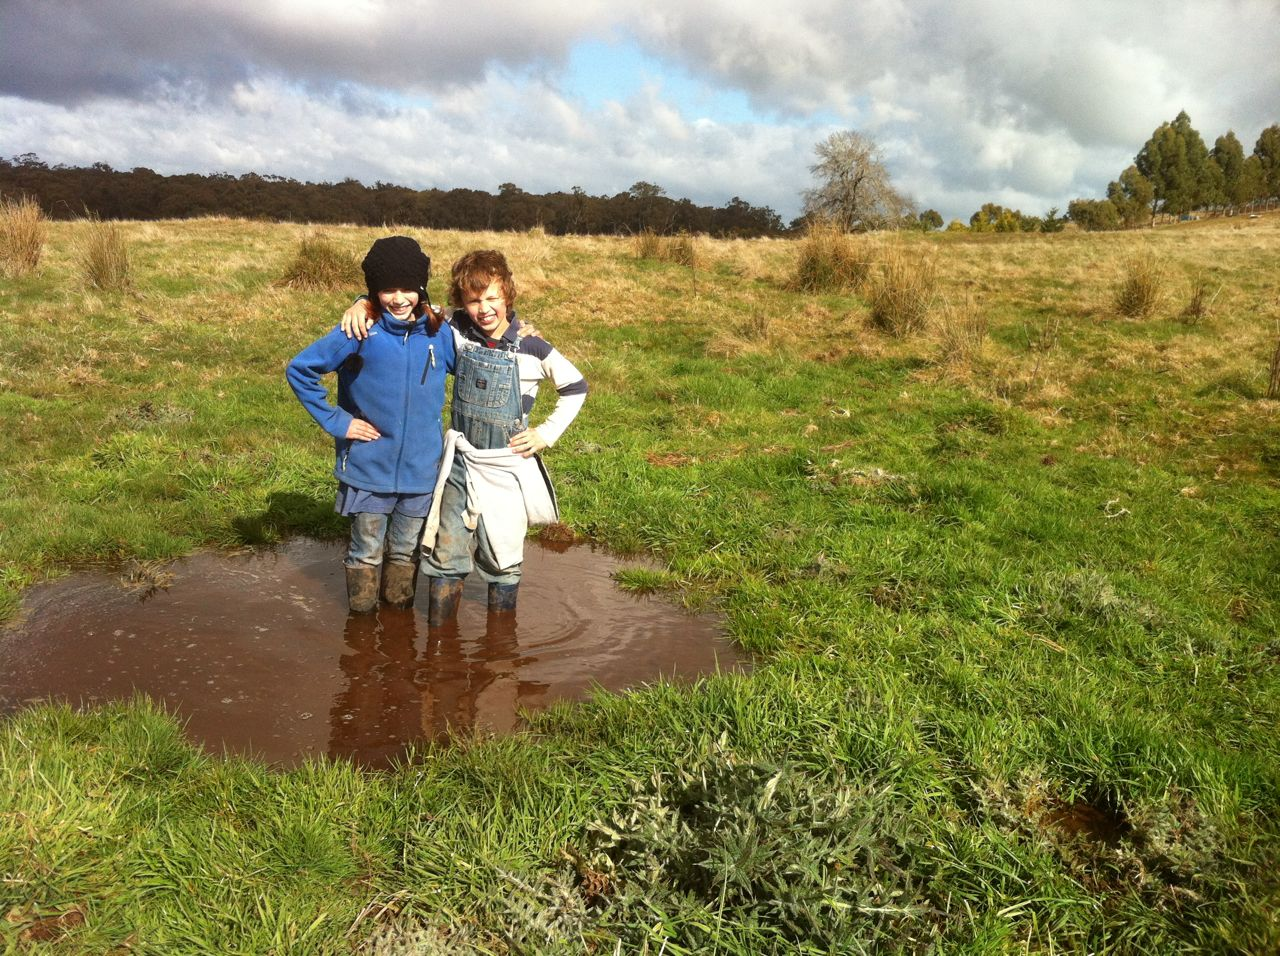 The orsmkids embracing winter on the farm.